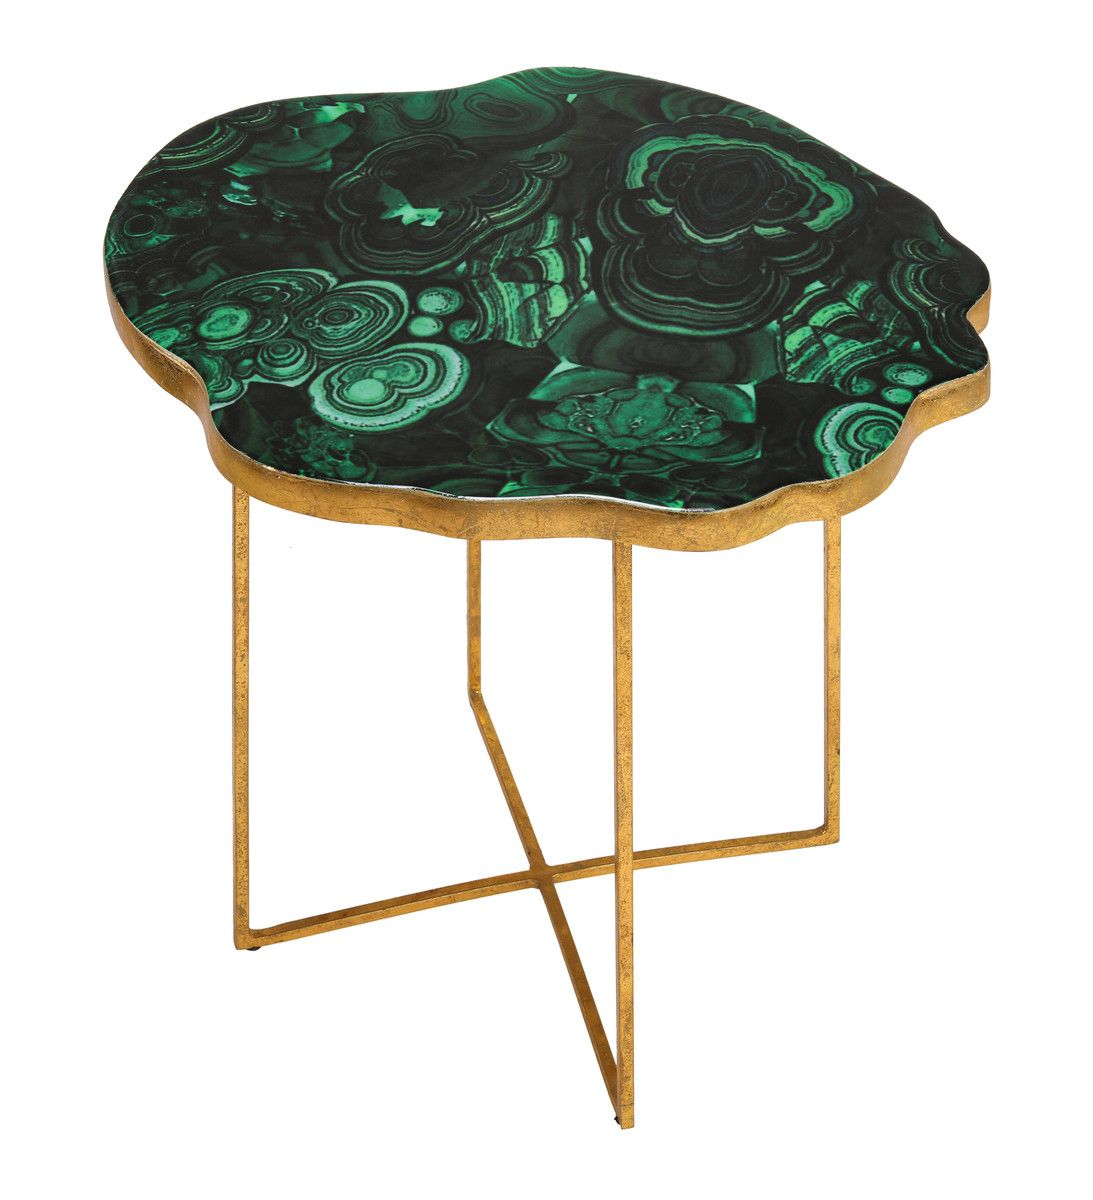 lily agate side table from tov furniture natalie glass accent end with charging station white round linens small dark wood telephone cordless lamps for living room jacket hoodie